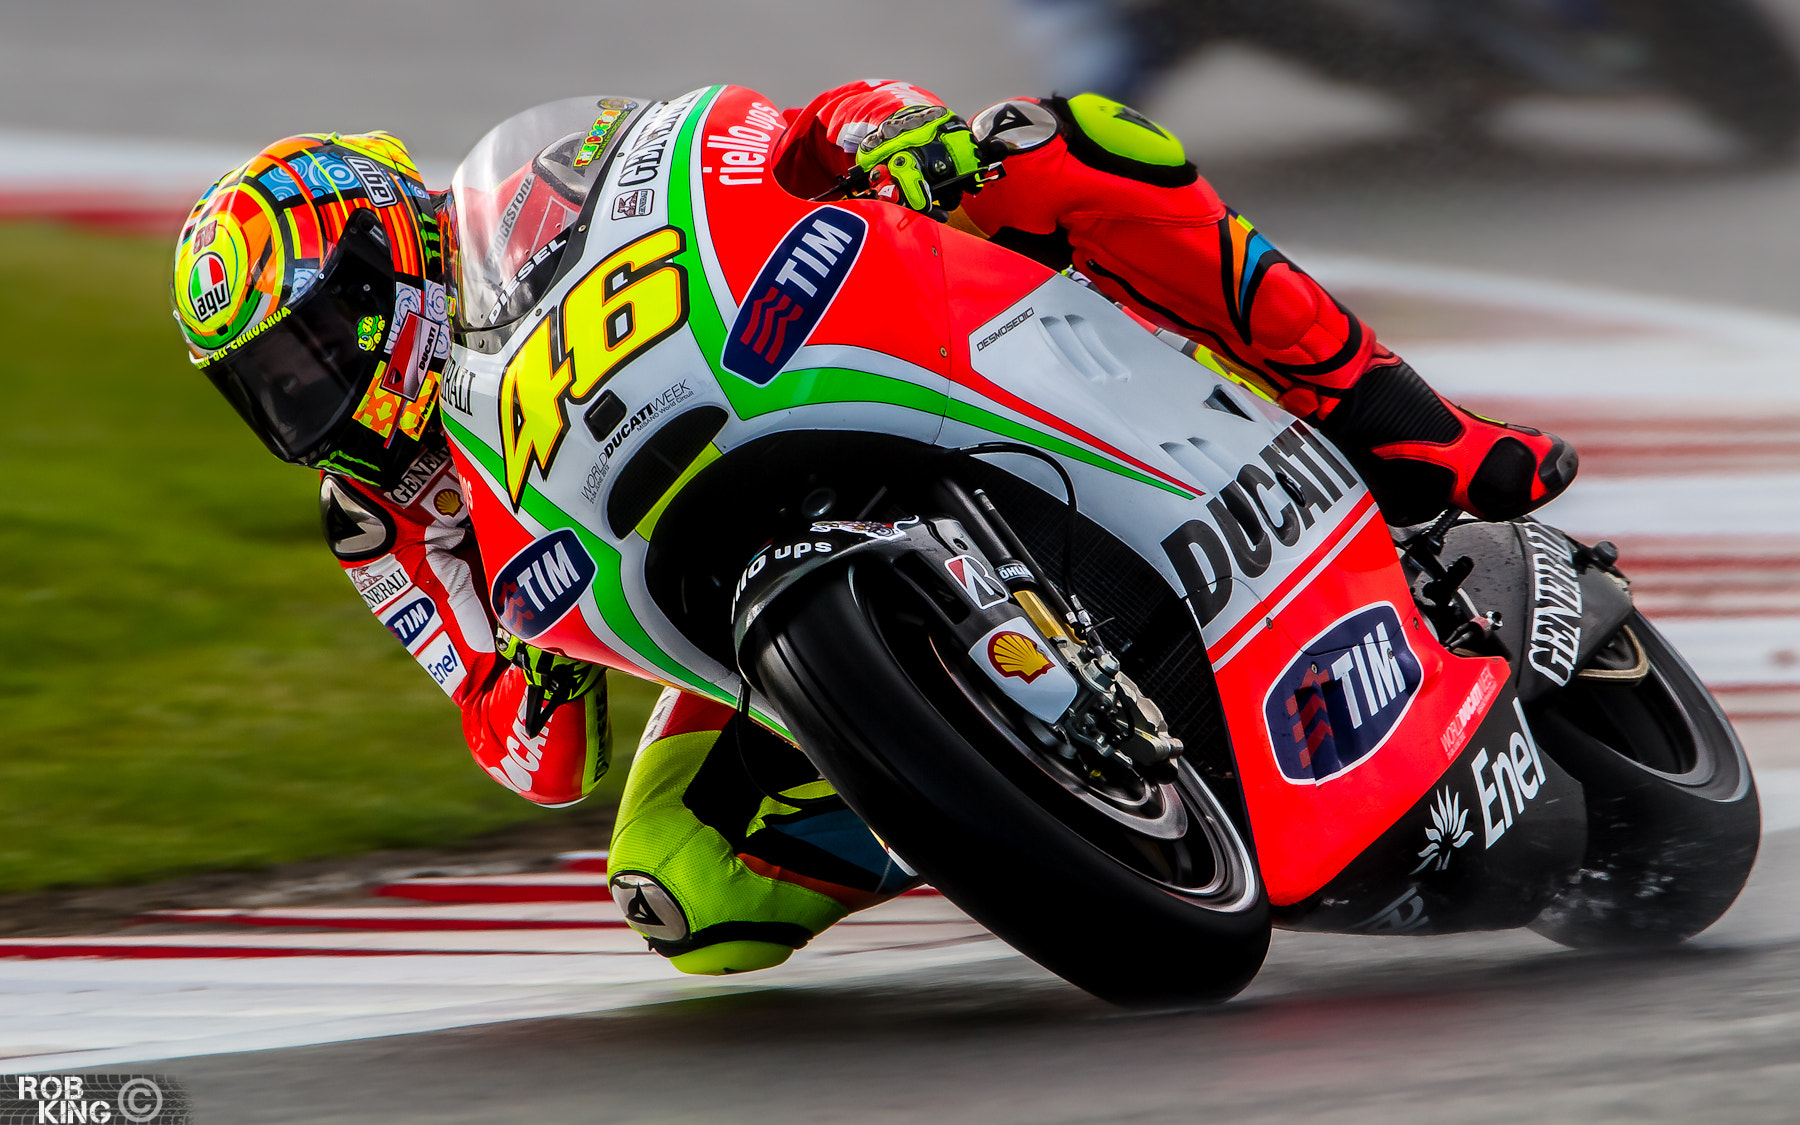 Photograph Valentino Rossi by Robert King on 500px